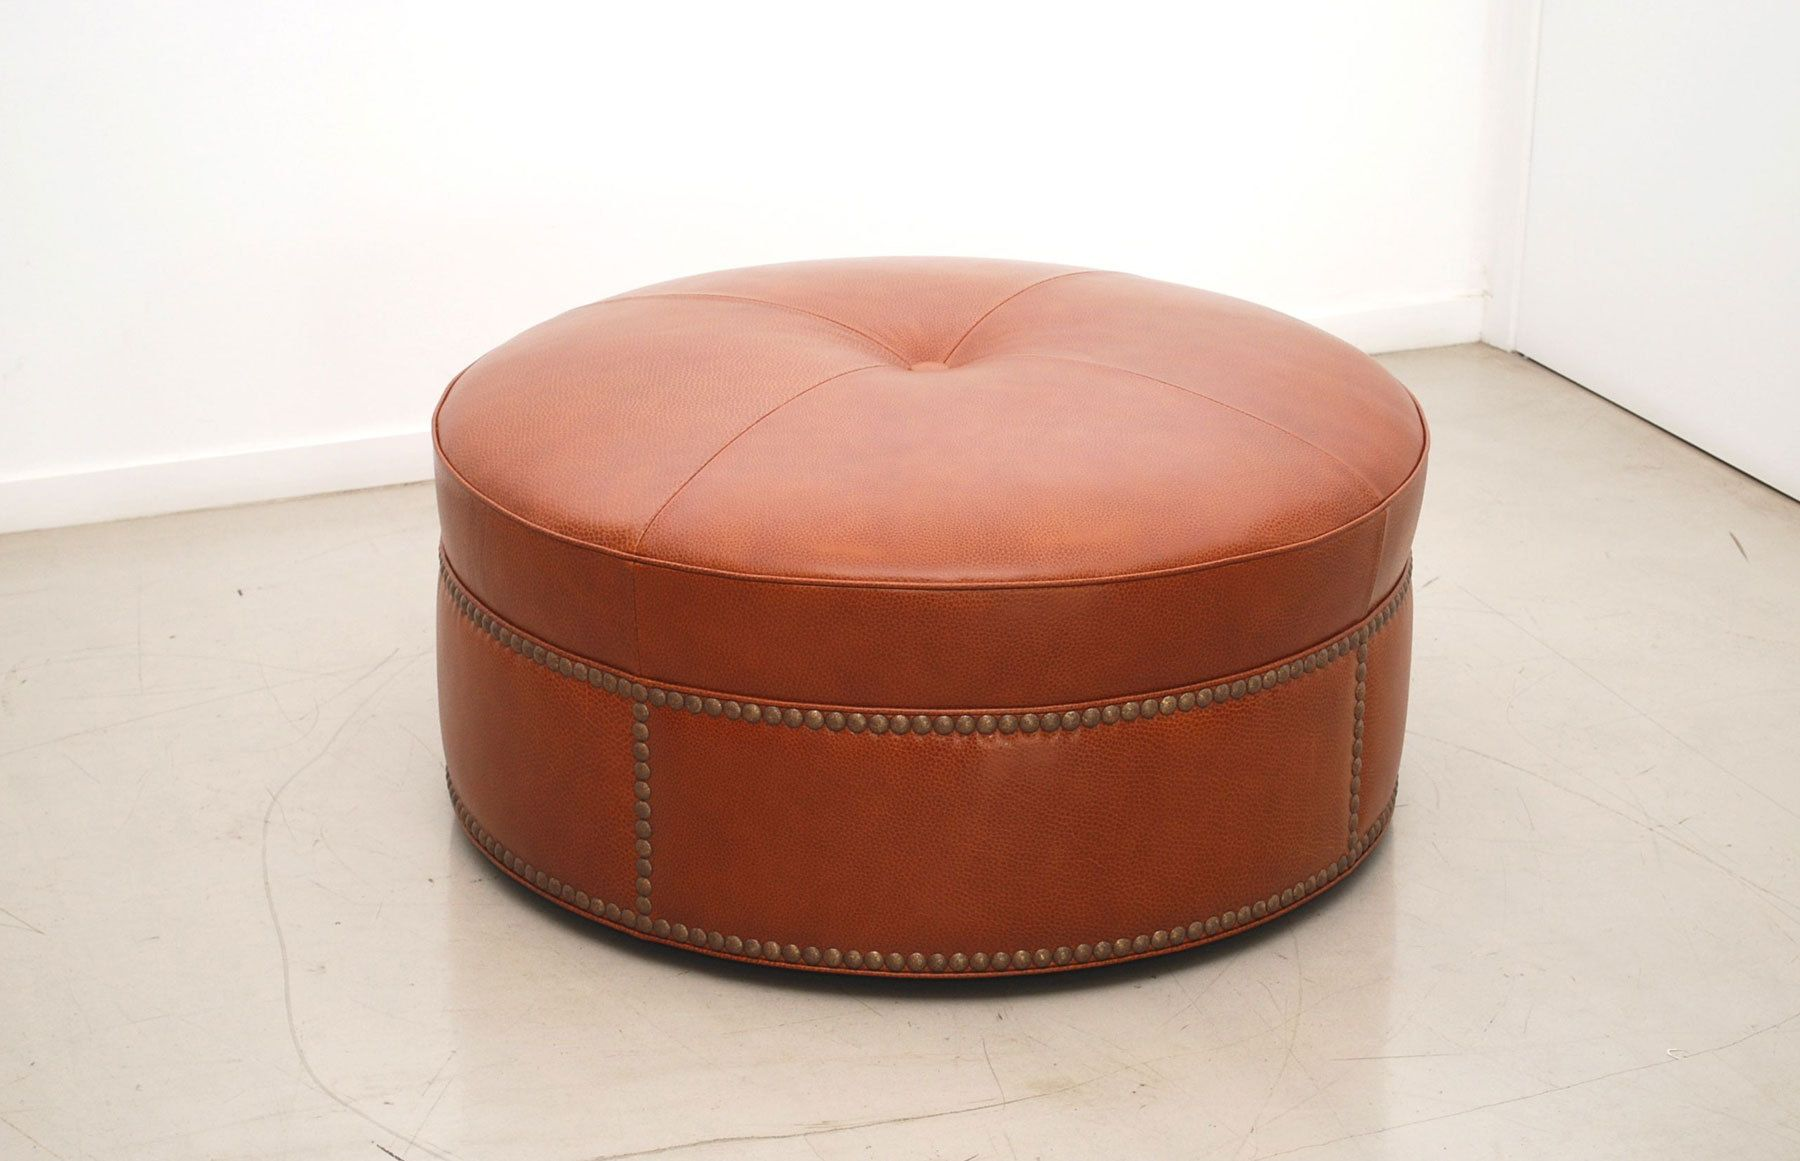 Furniture Brown Leather Round Ottoman With Cream Stitching Thread On Ceramics Flooring Wonderful Looks Of Large Round Ottoman Perfecting Living Room Decoratio